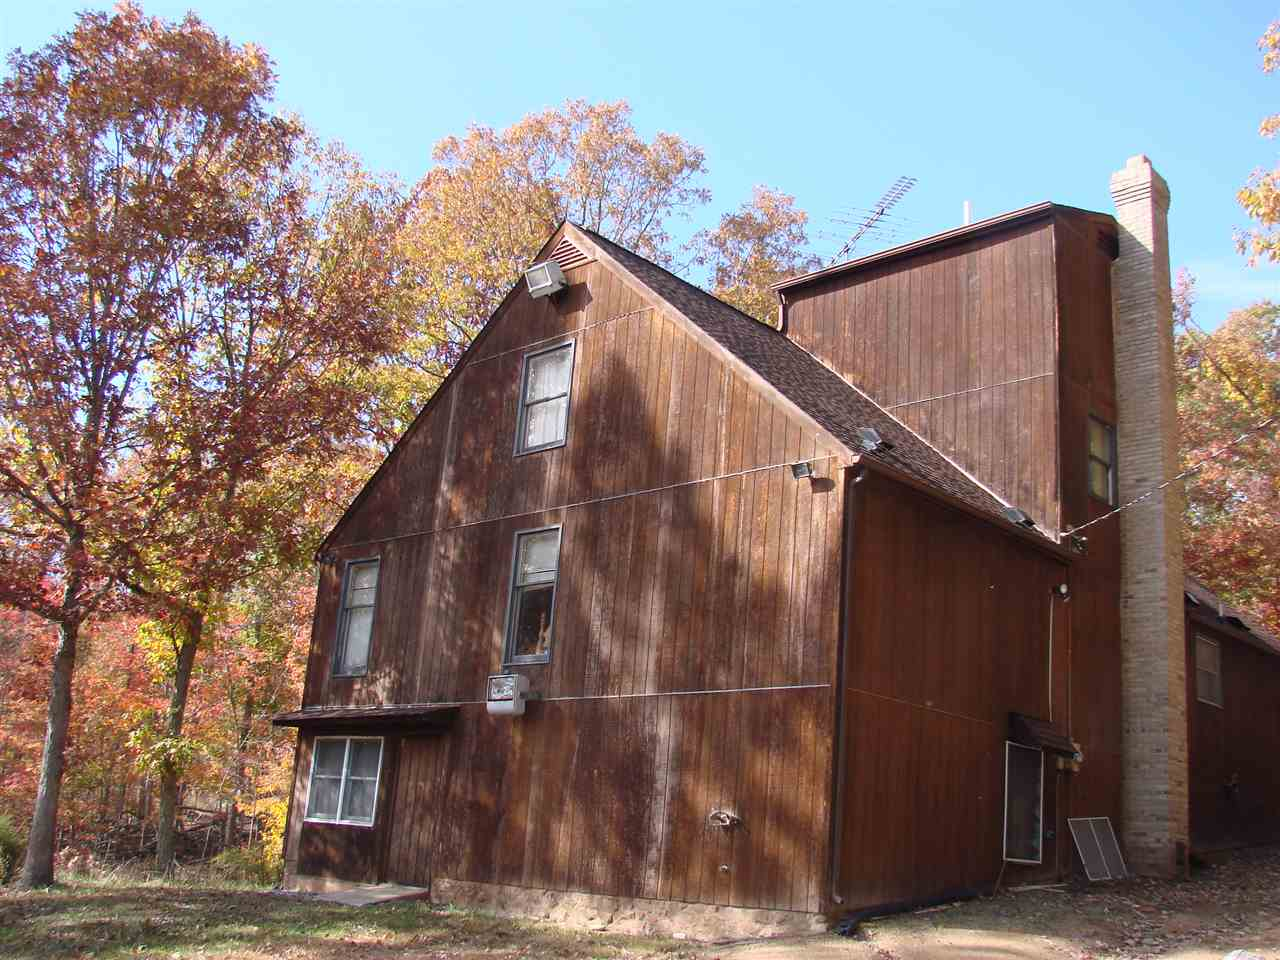 4215 PAGE VALLEY RD, LURAY, VA 22835